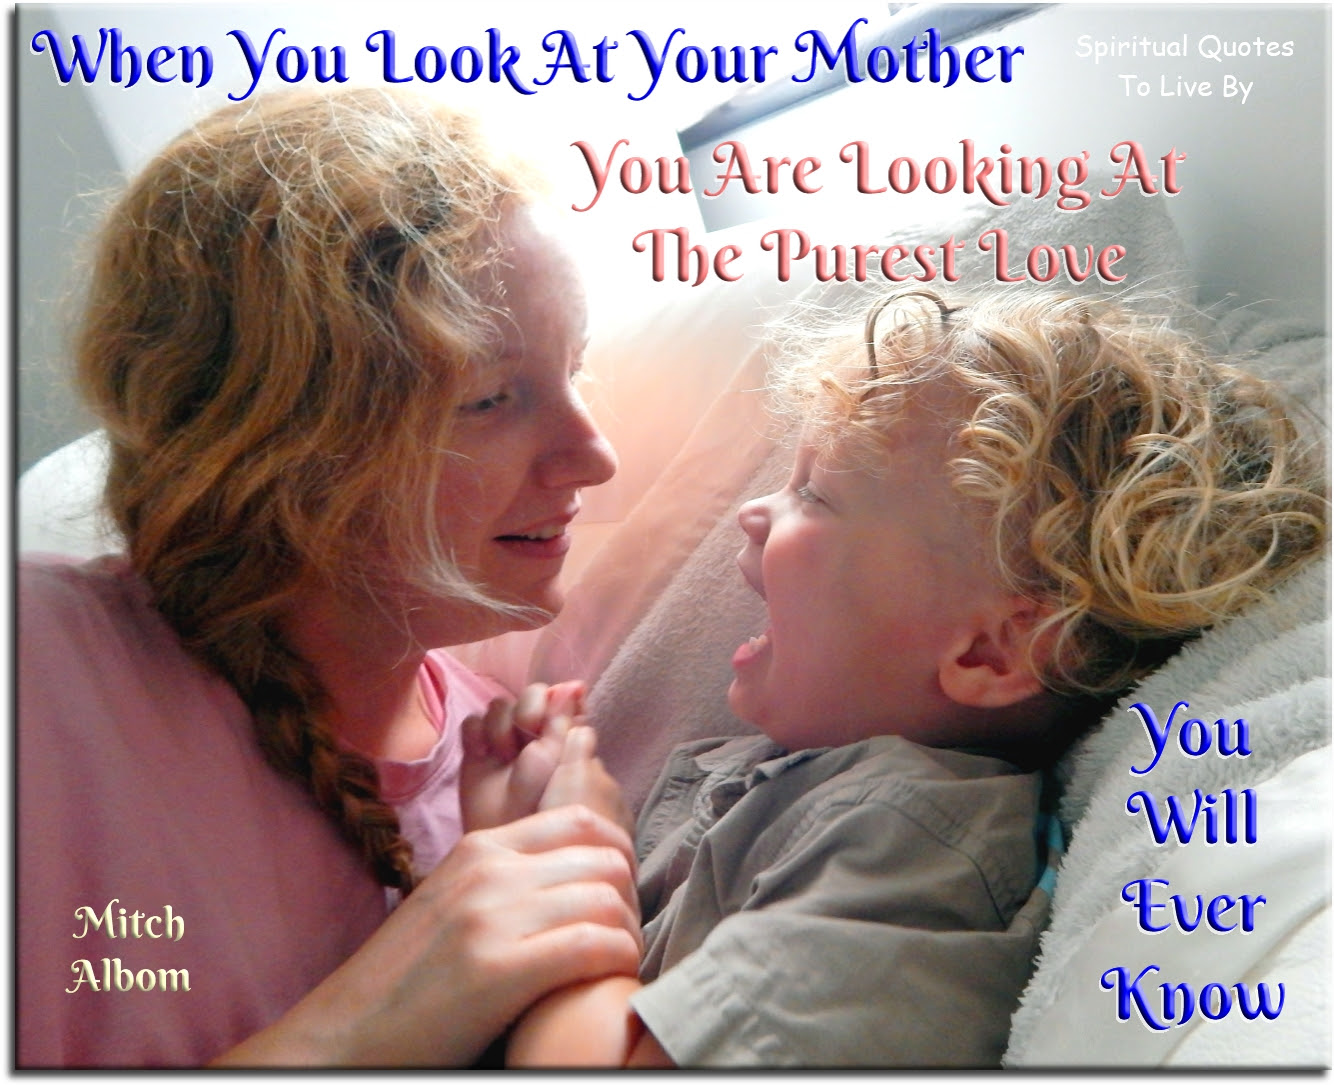 Quotes About Mothers To Live By